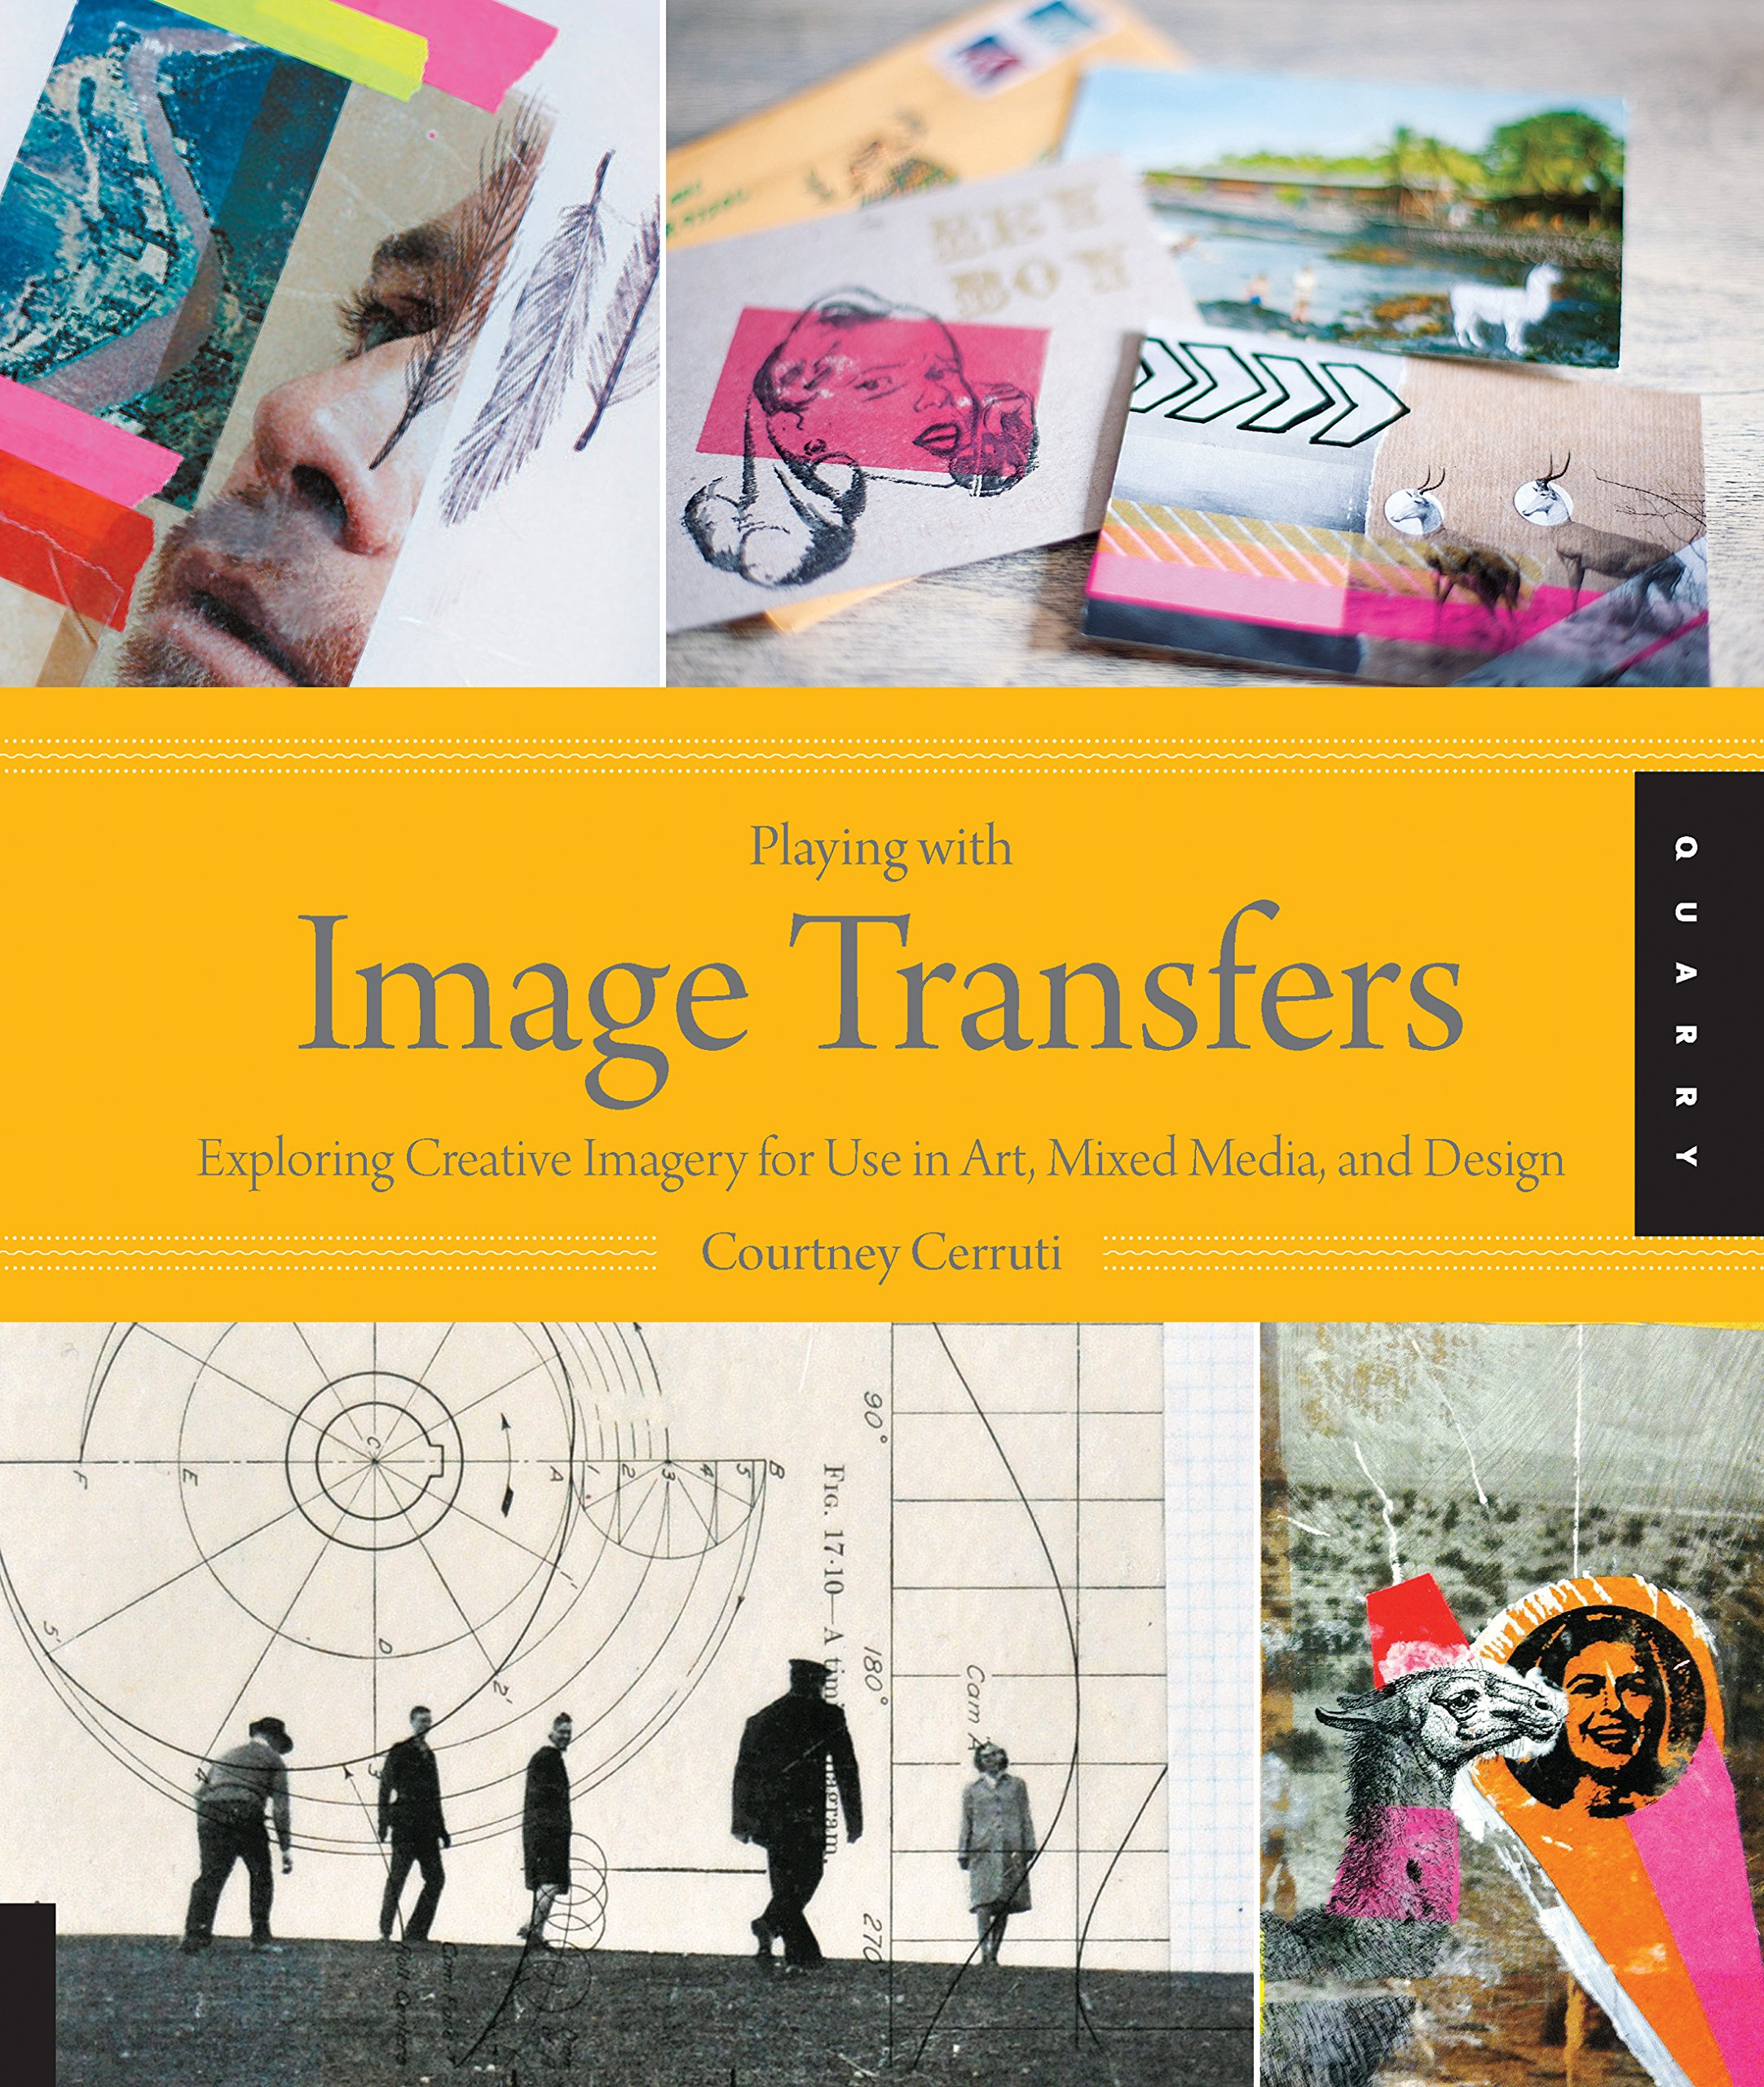 Playing with Image Transfers: Exploring Creative Imagery for Use in Art, Mixed Media, and Design